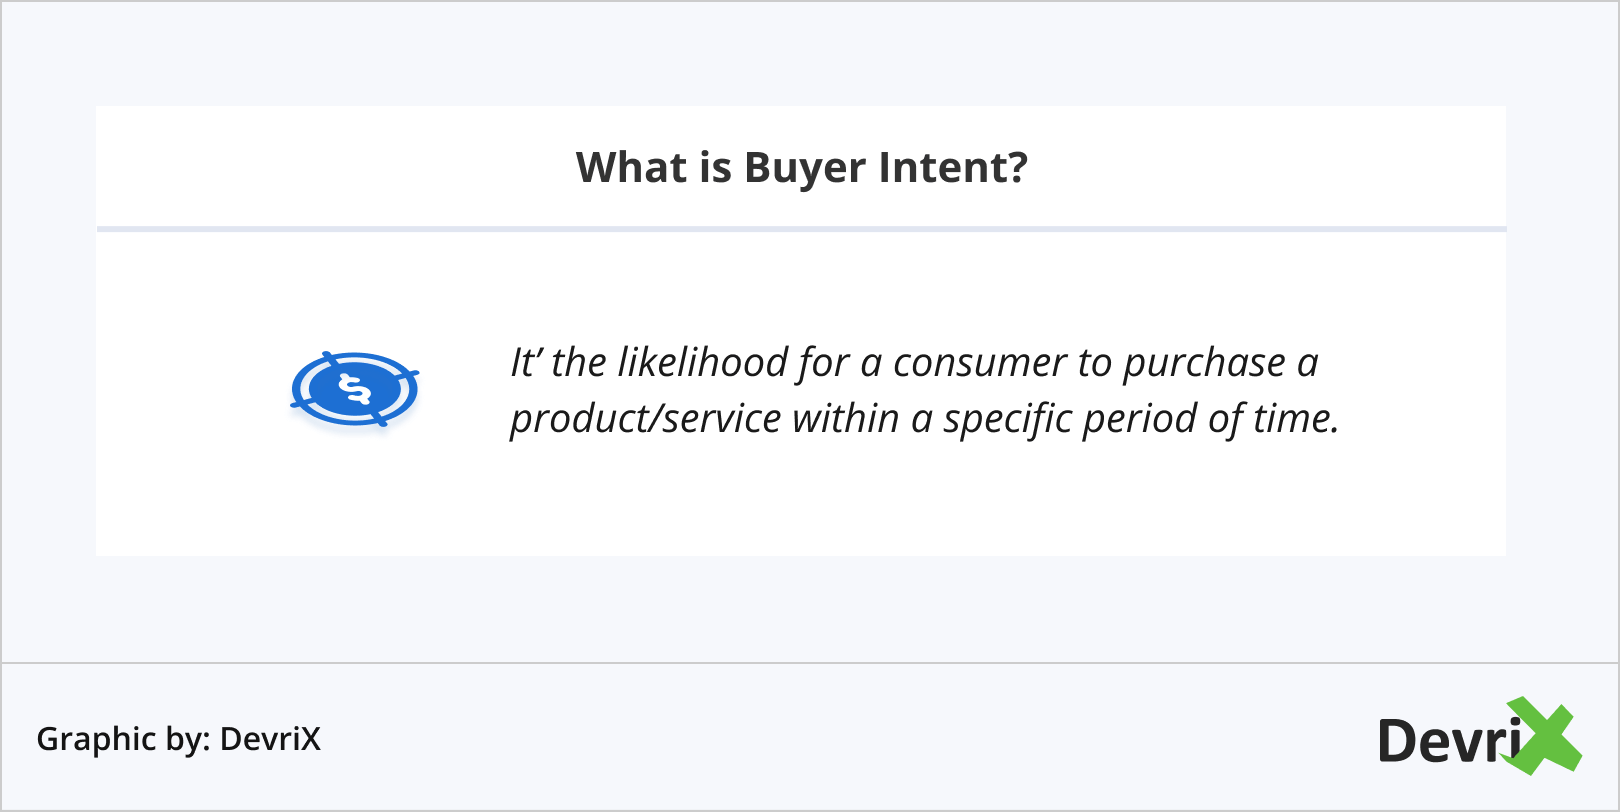 What is Buyer Intent